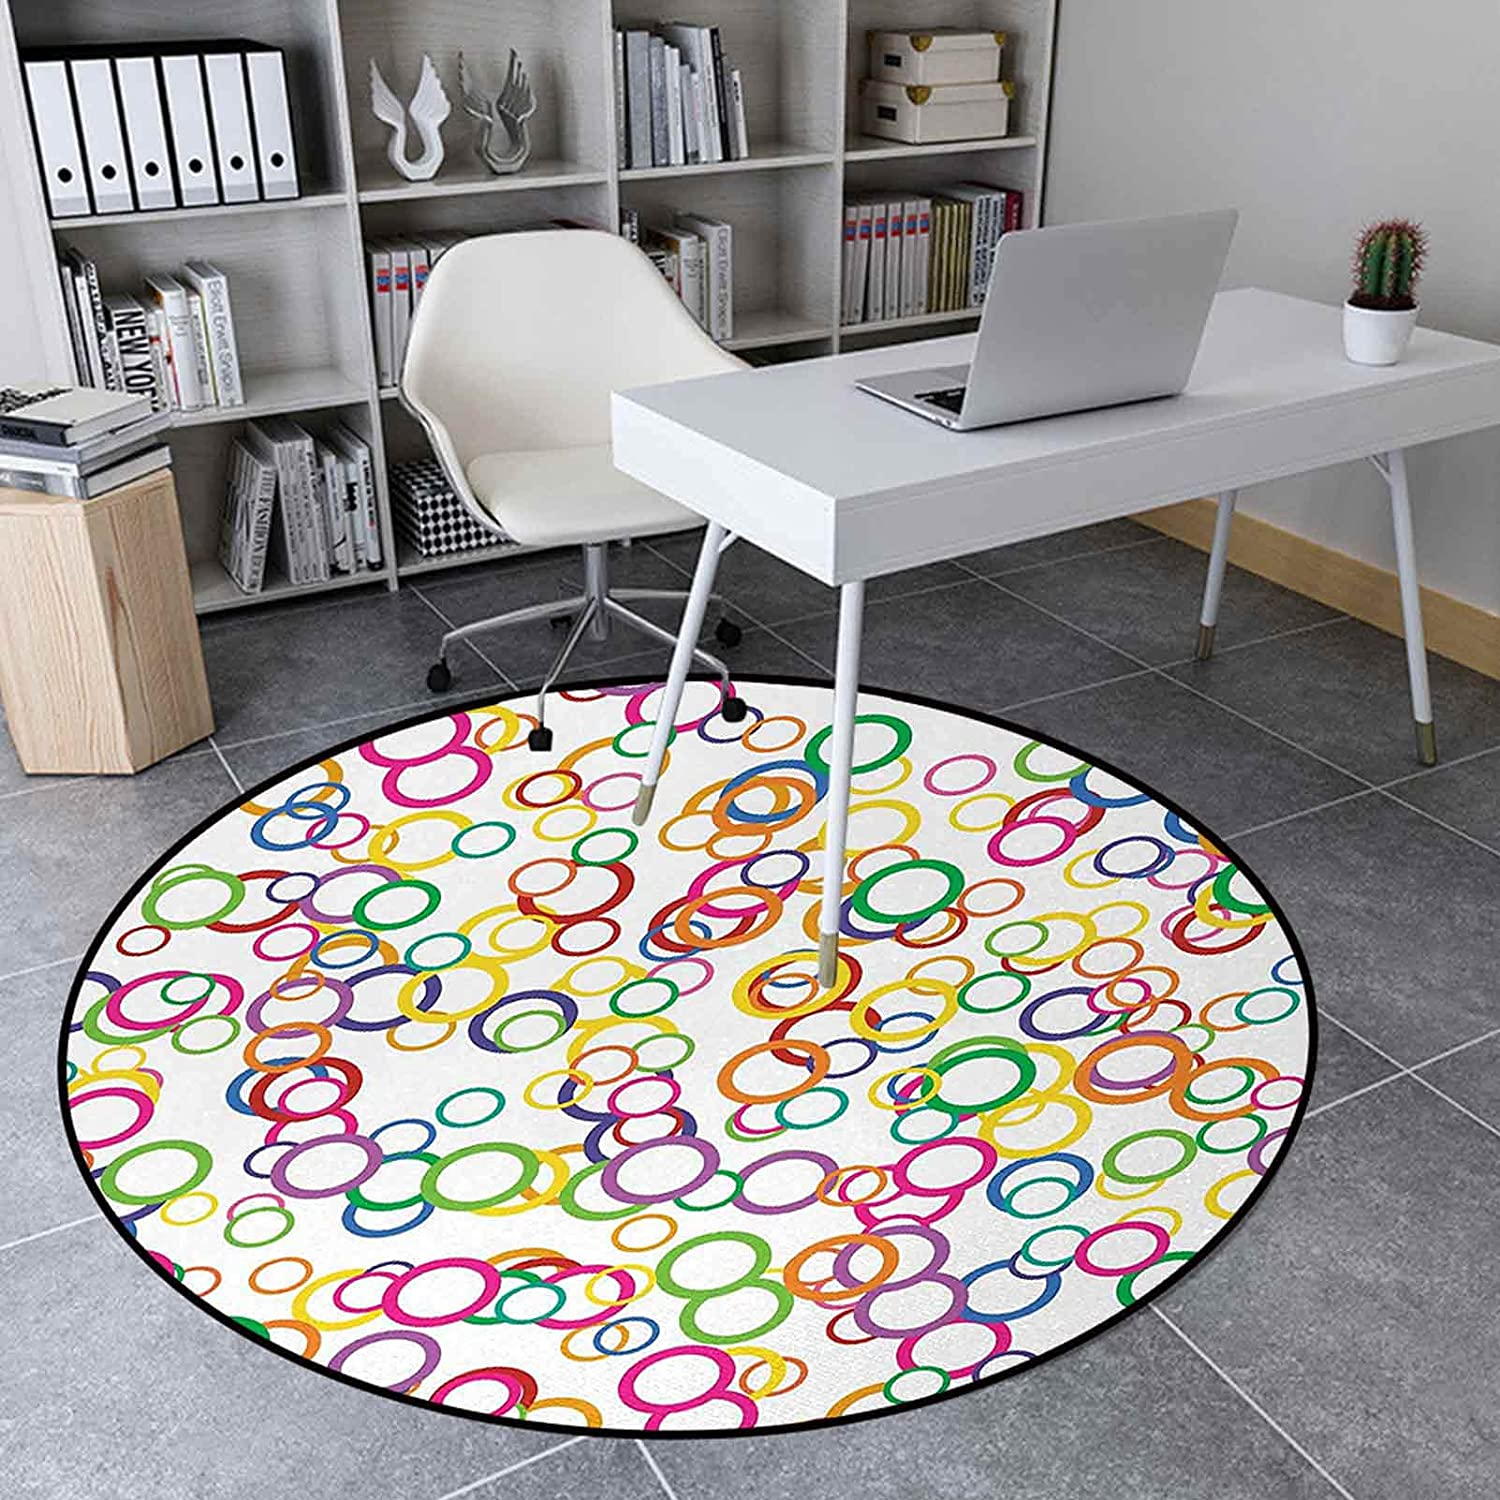 Area Rug El Paso Mall Round New life 5.6 Ft Floor Mat Carpet for Bedroom Living Room